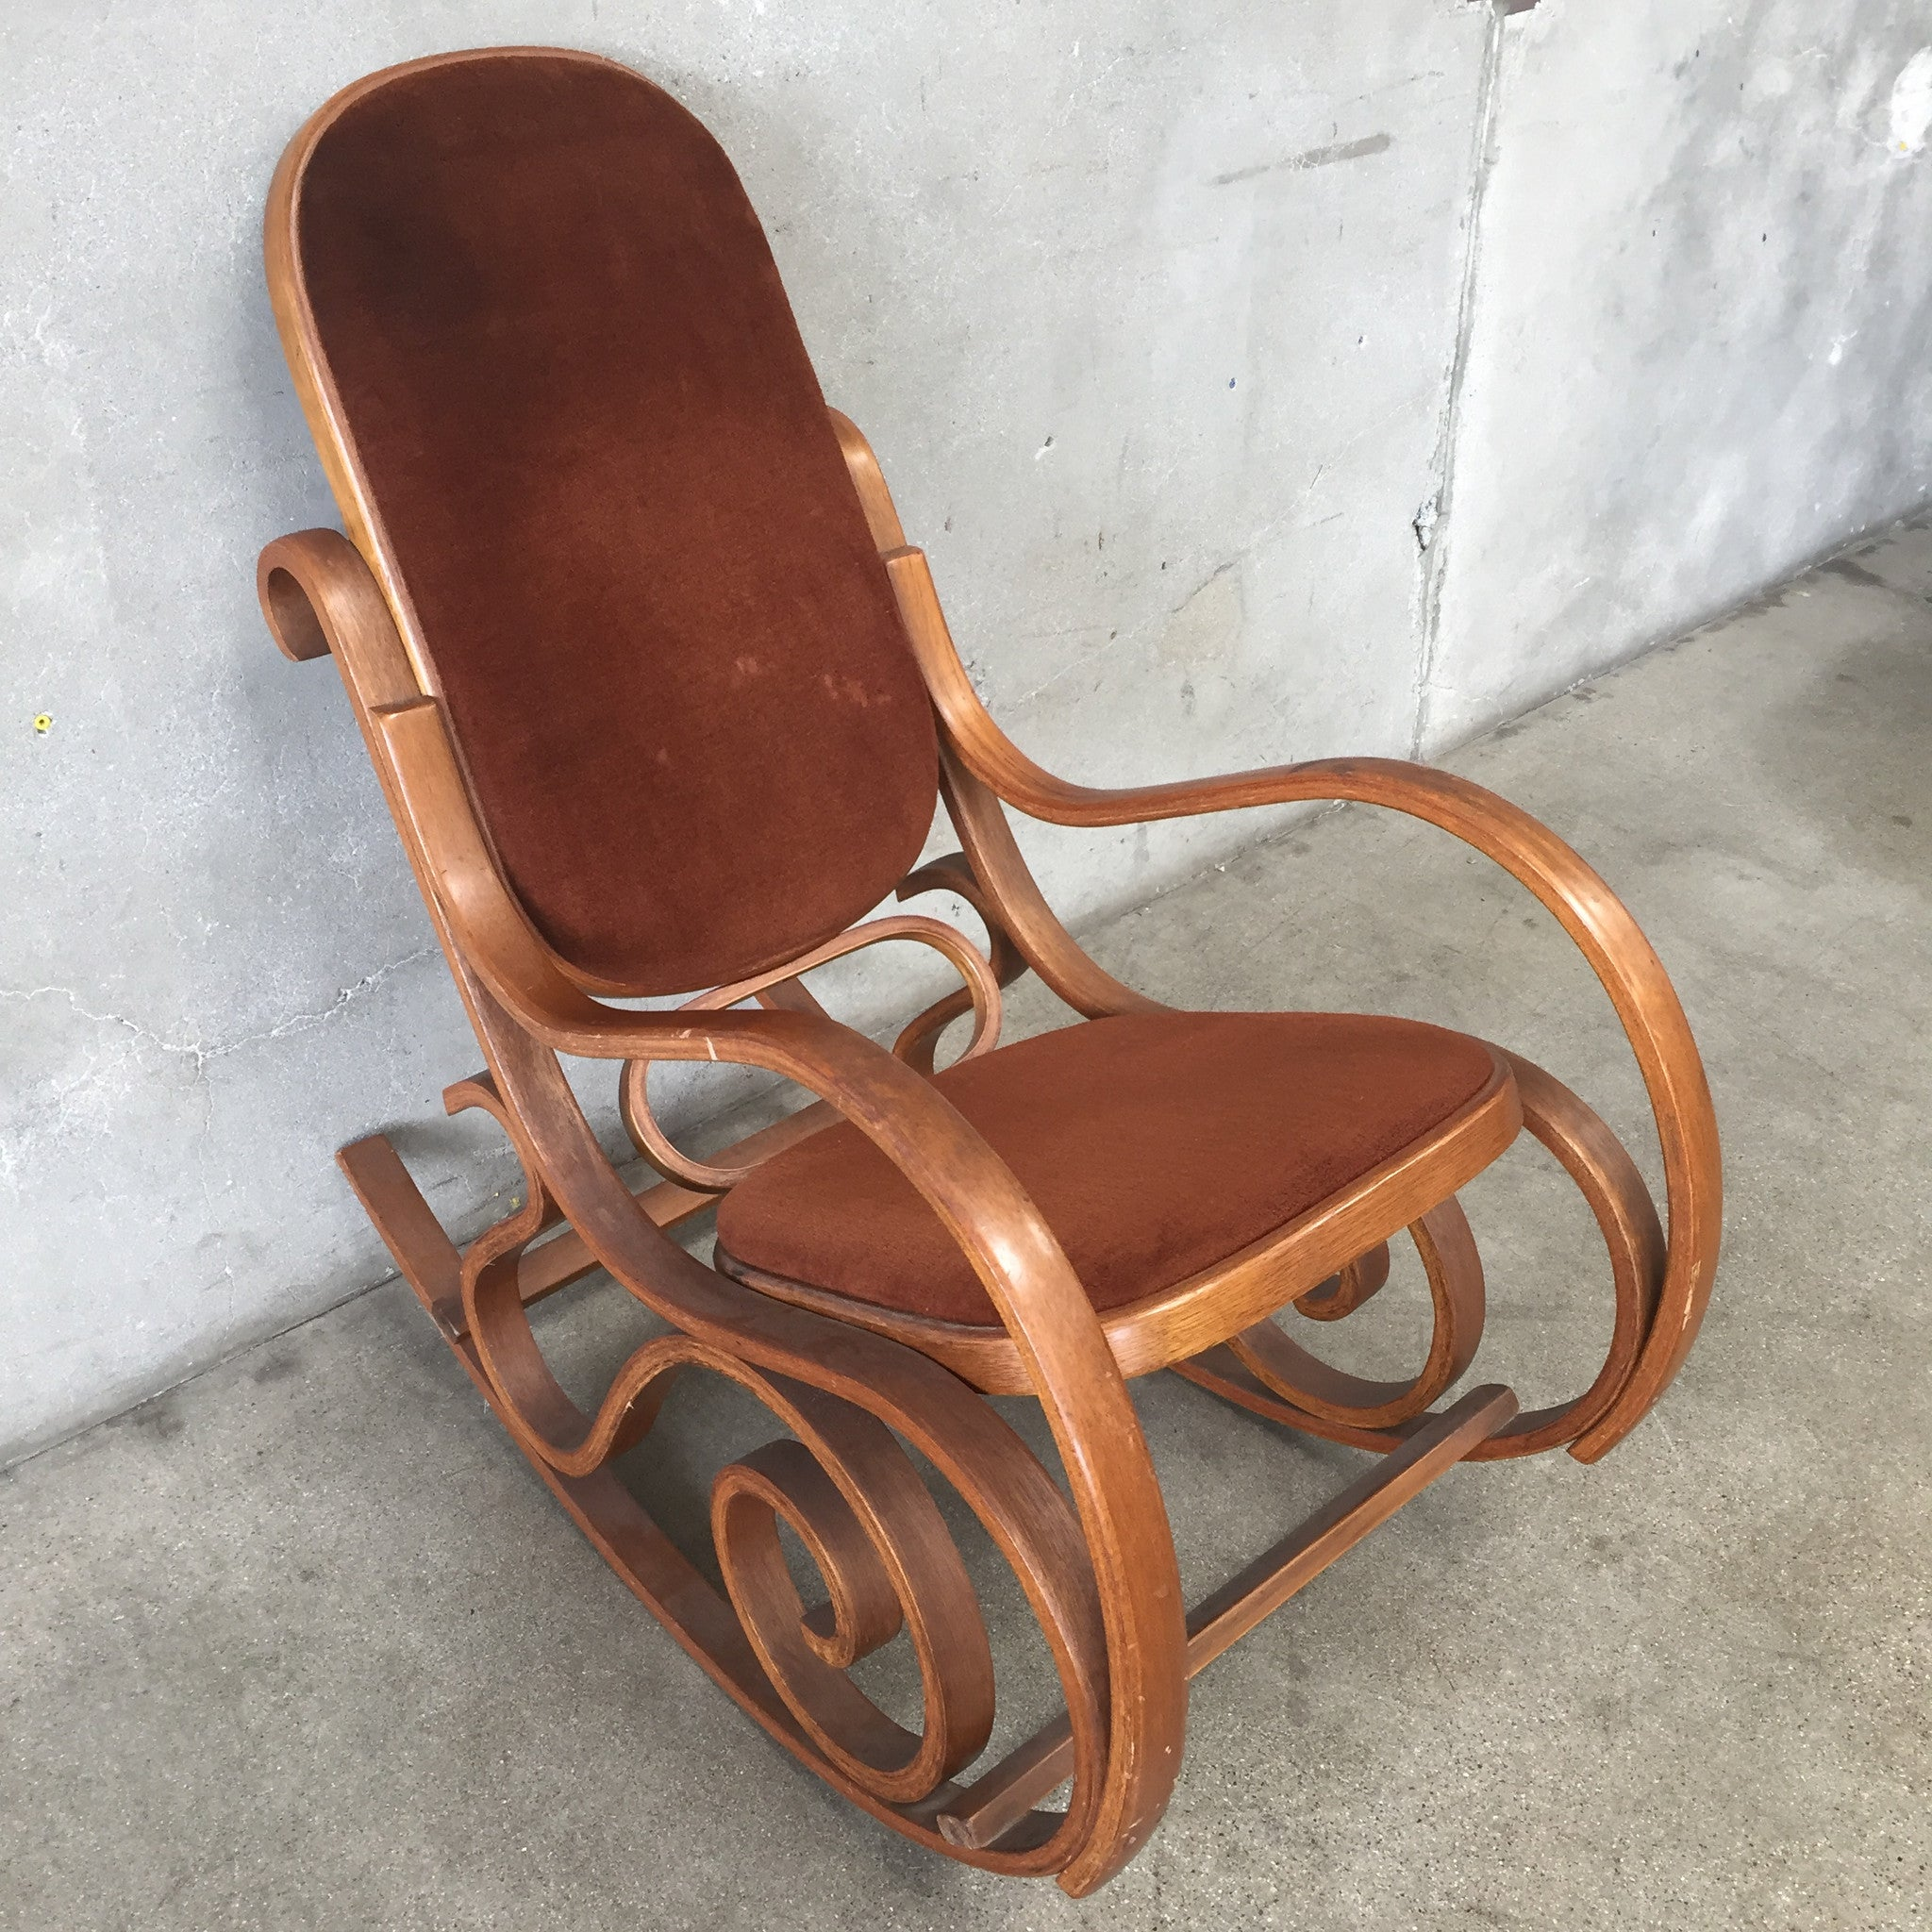 Bentwood rocking chair -  Vintage Bentwood Rocking Chair